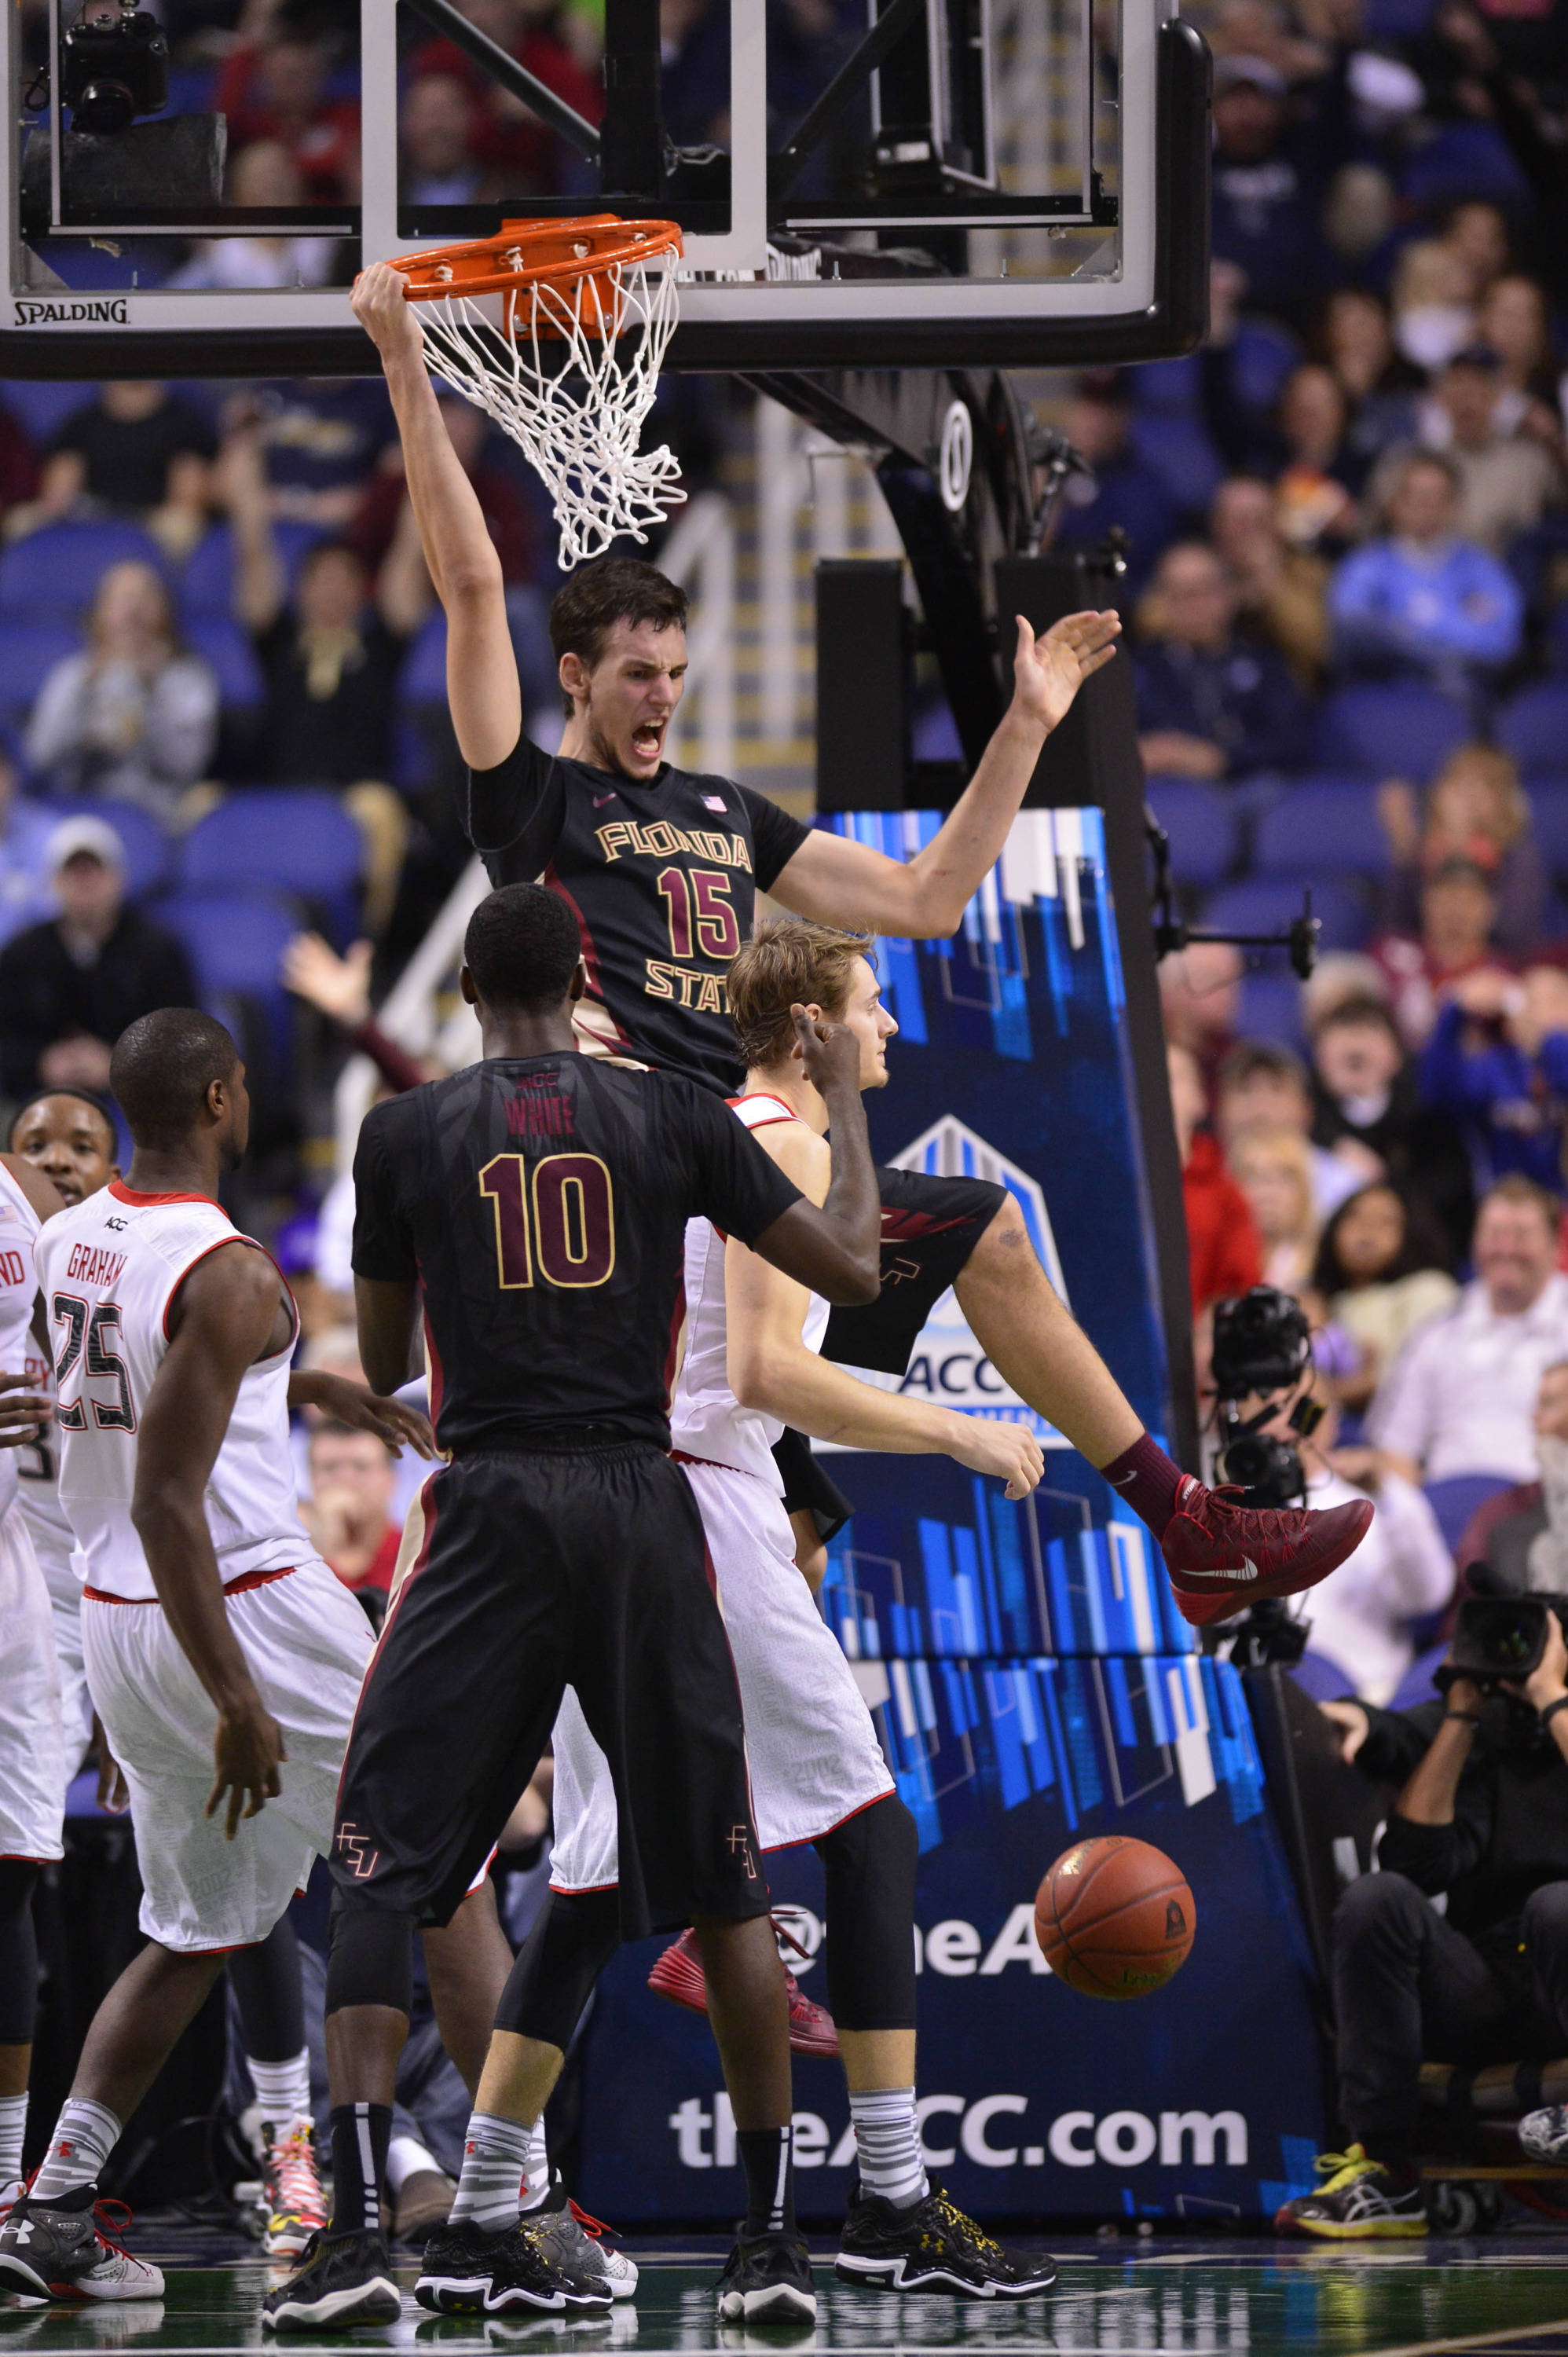 Florida State Seminoles center Boris Bojanovsky (15) hits the game winning shot. The Seminoles defeated the Terrapins 67-65 in the second round of the ACC college basketball tournament at Greensboro Coliseum. Mandatory Credit: Bob Donnan-USA TODAY Sports